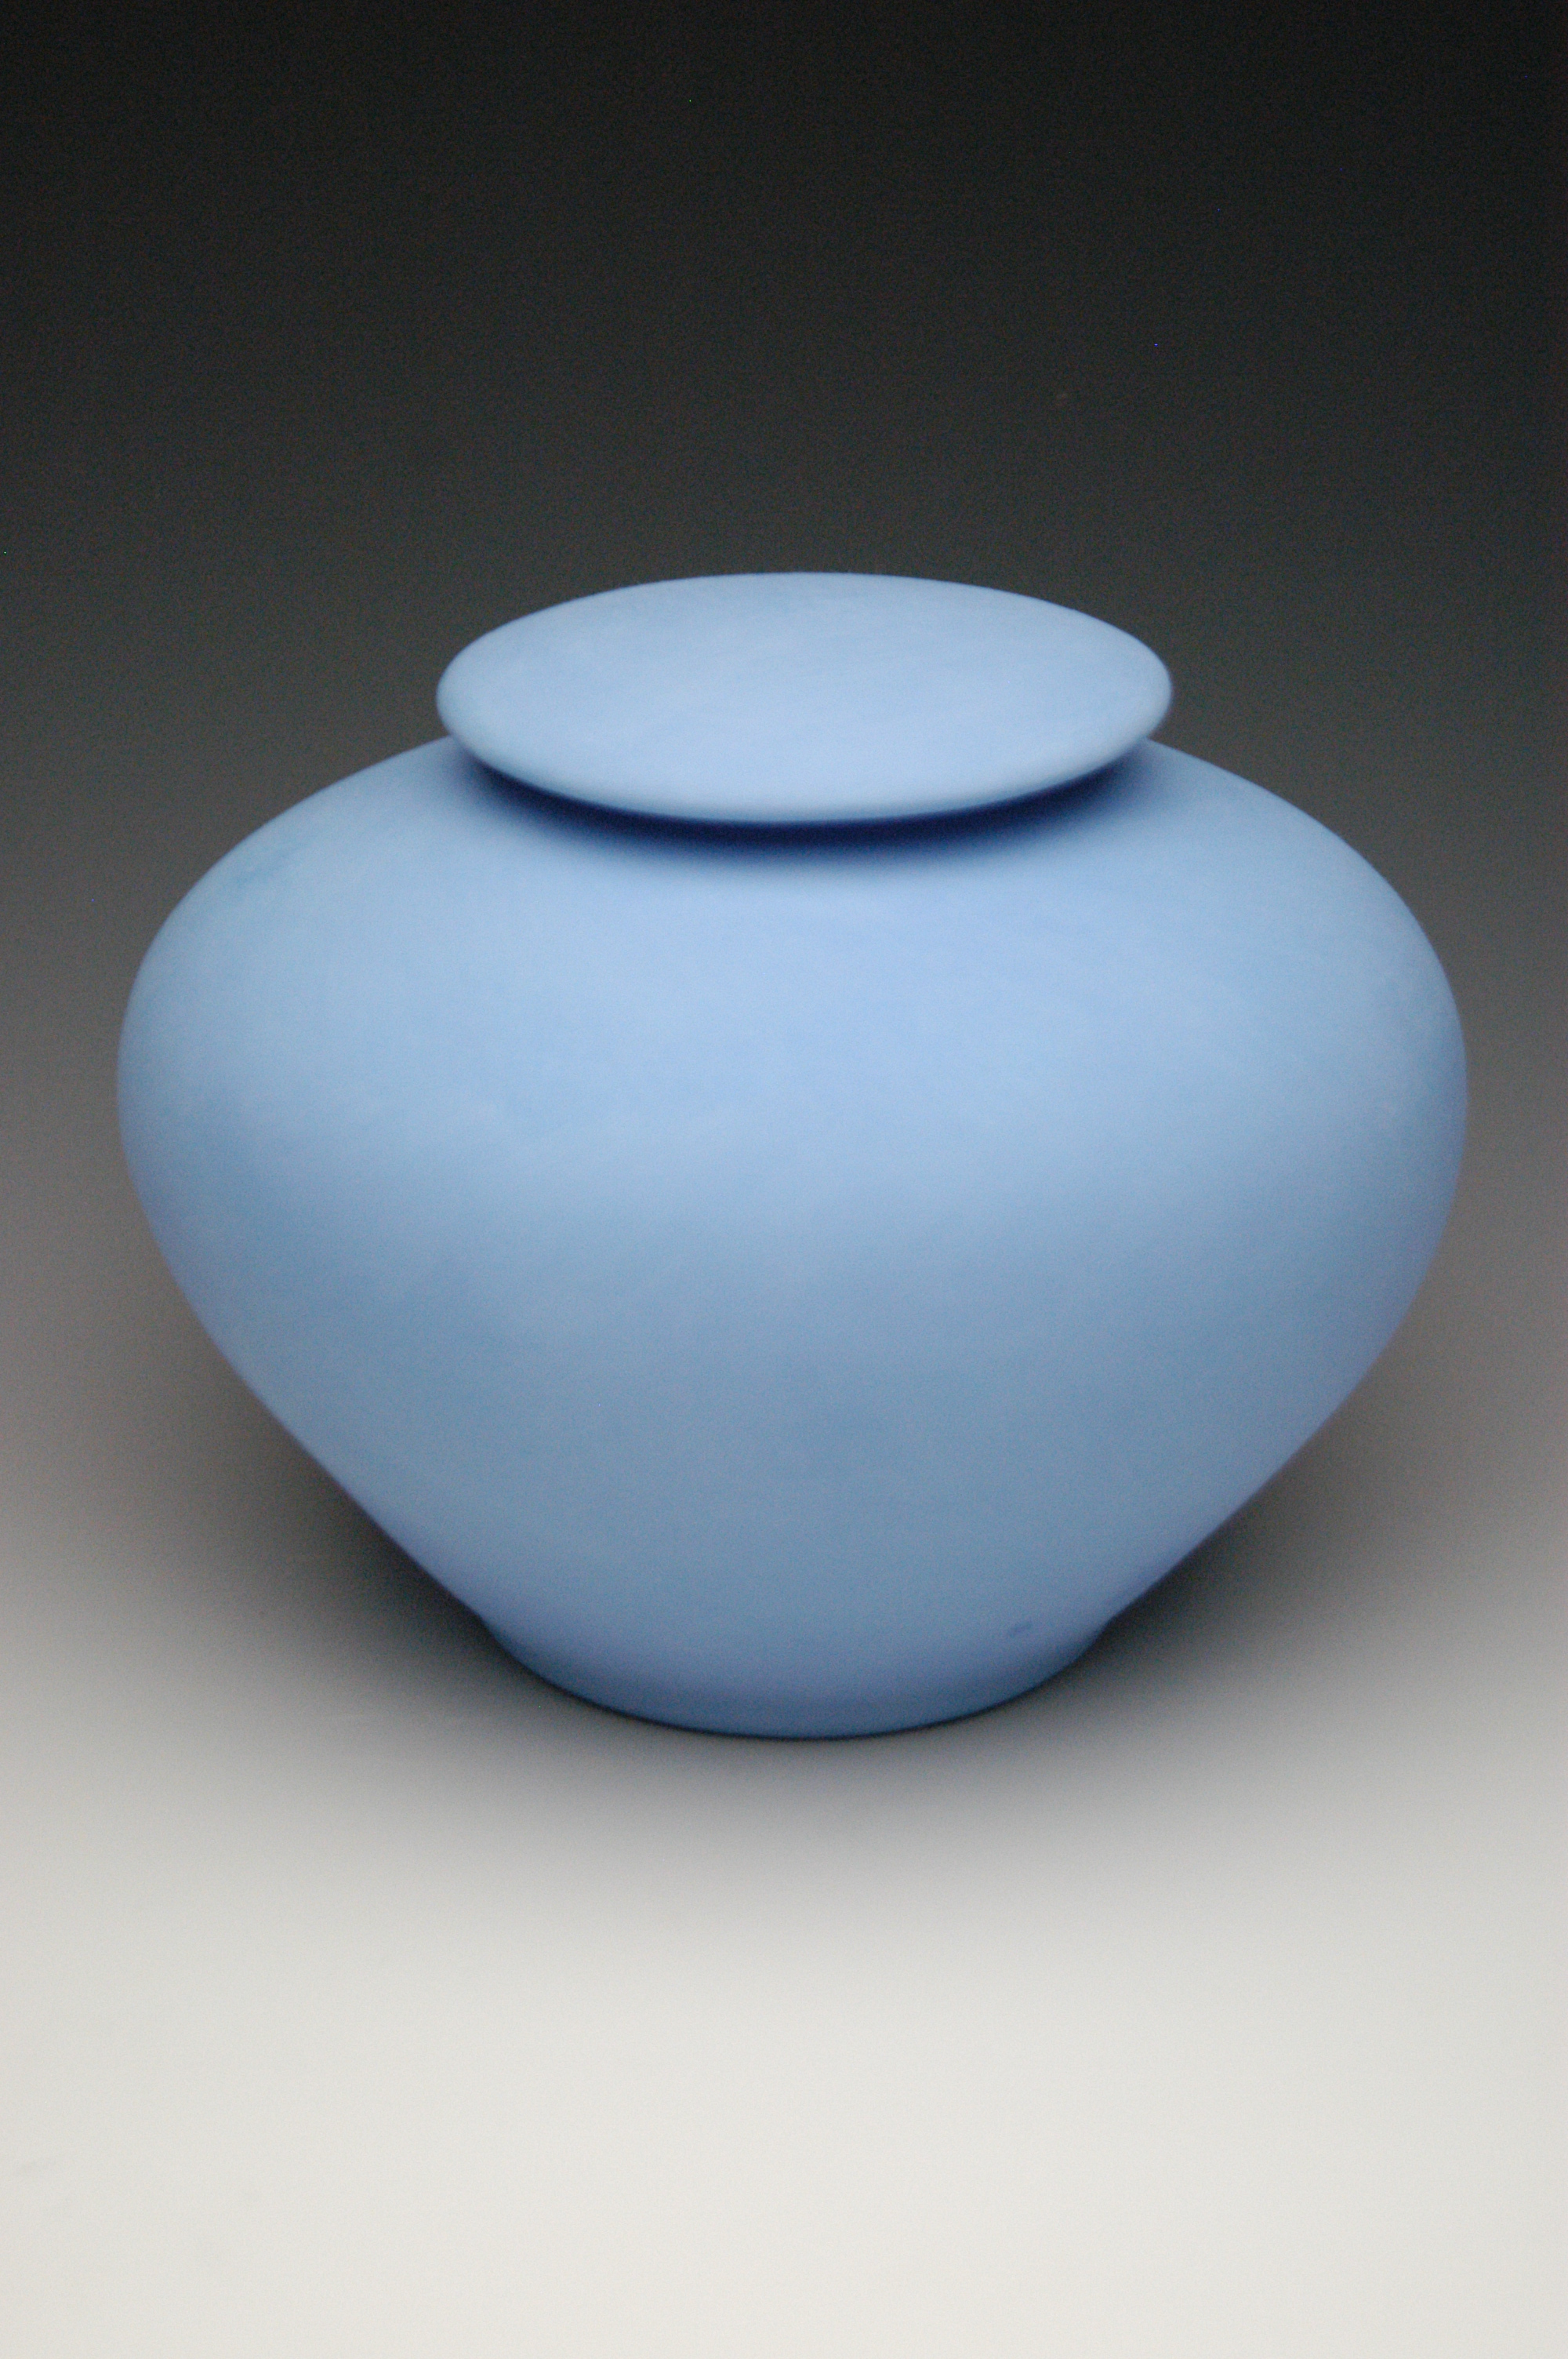 Pastel blue biodegadable cremation urn